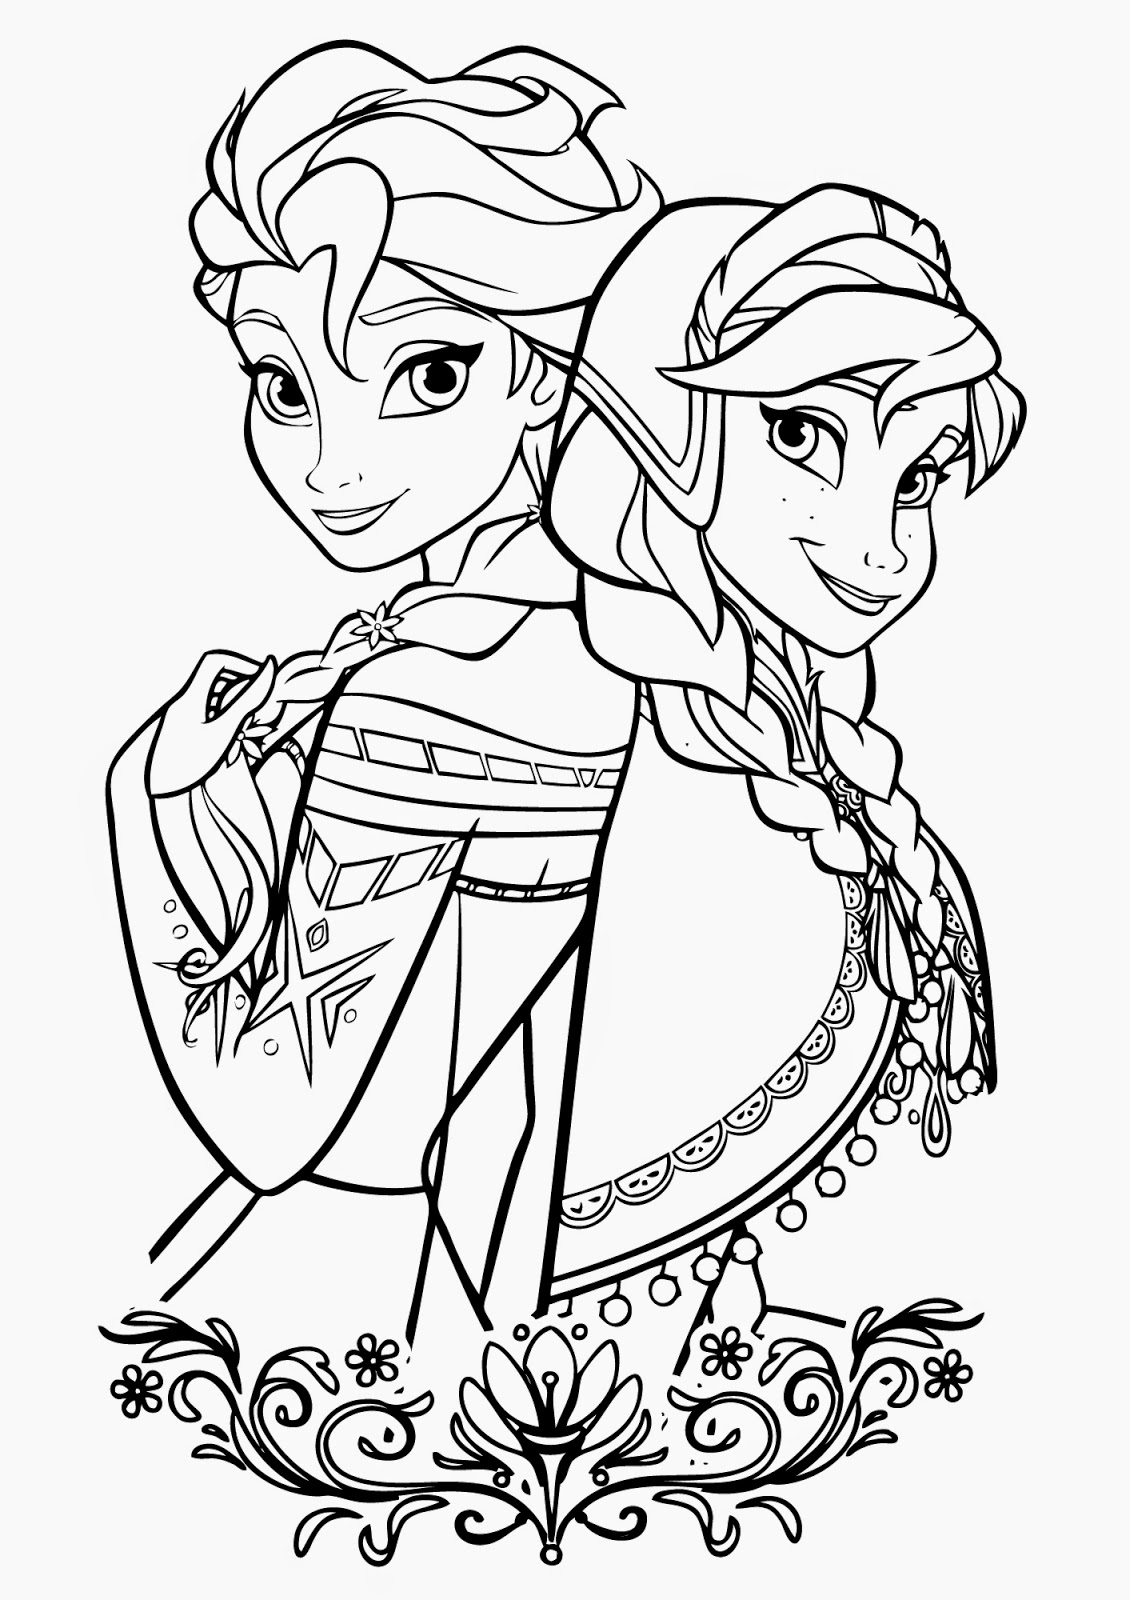 Coloring Pages For Adults Disney